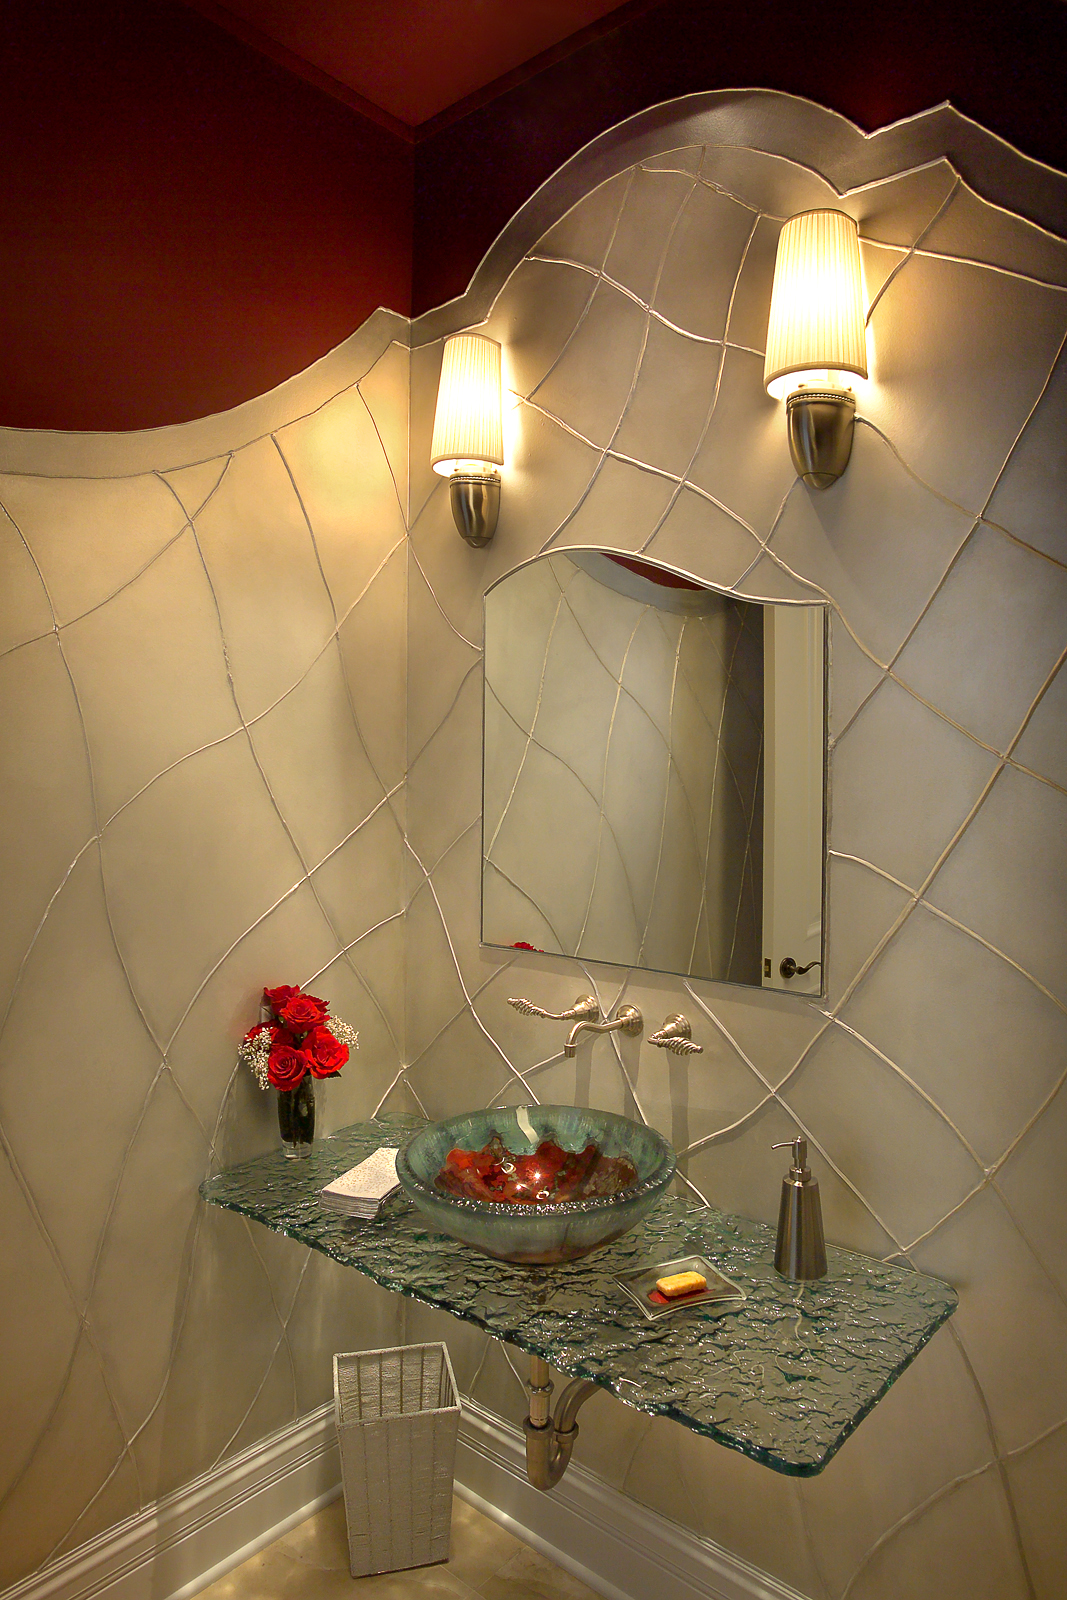 custom glass, glass lavatory sink, faux finish, unique mirror